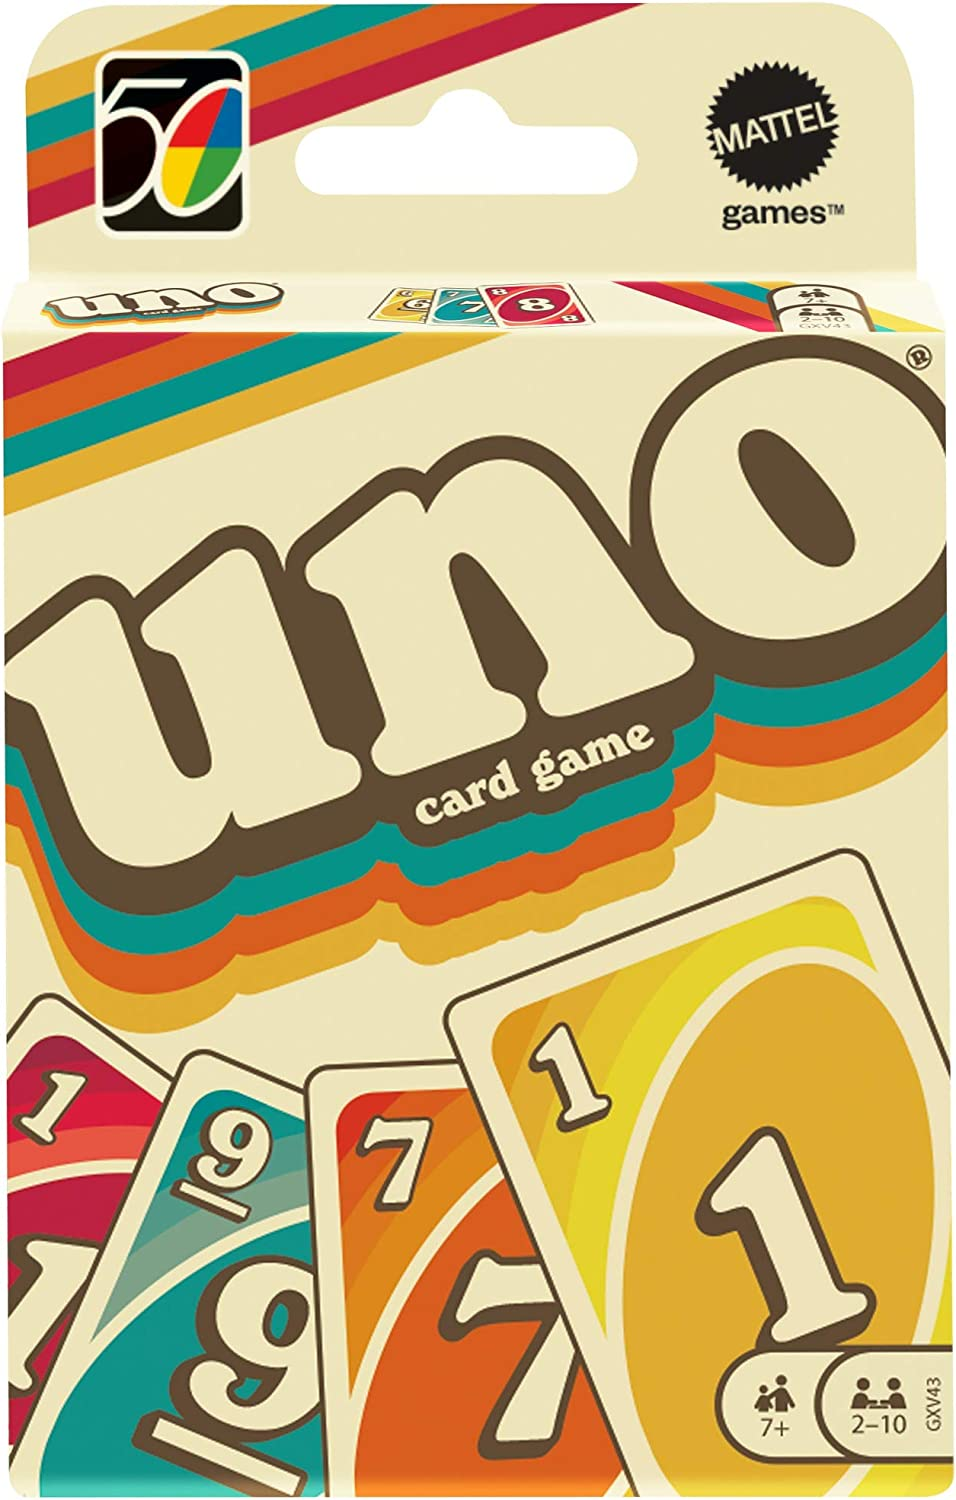 112 Cards for Collectors Ages 7 Years /& Older. UNO Iconic Series 1970s Matching Card Game Featuring Decade-Themed Design Teen /& Adult Game Night